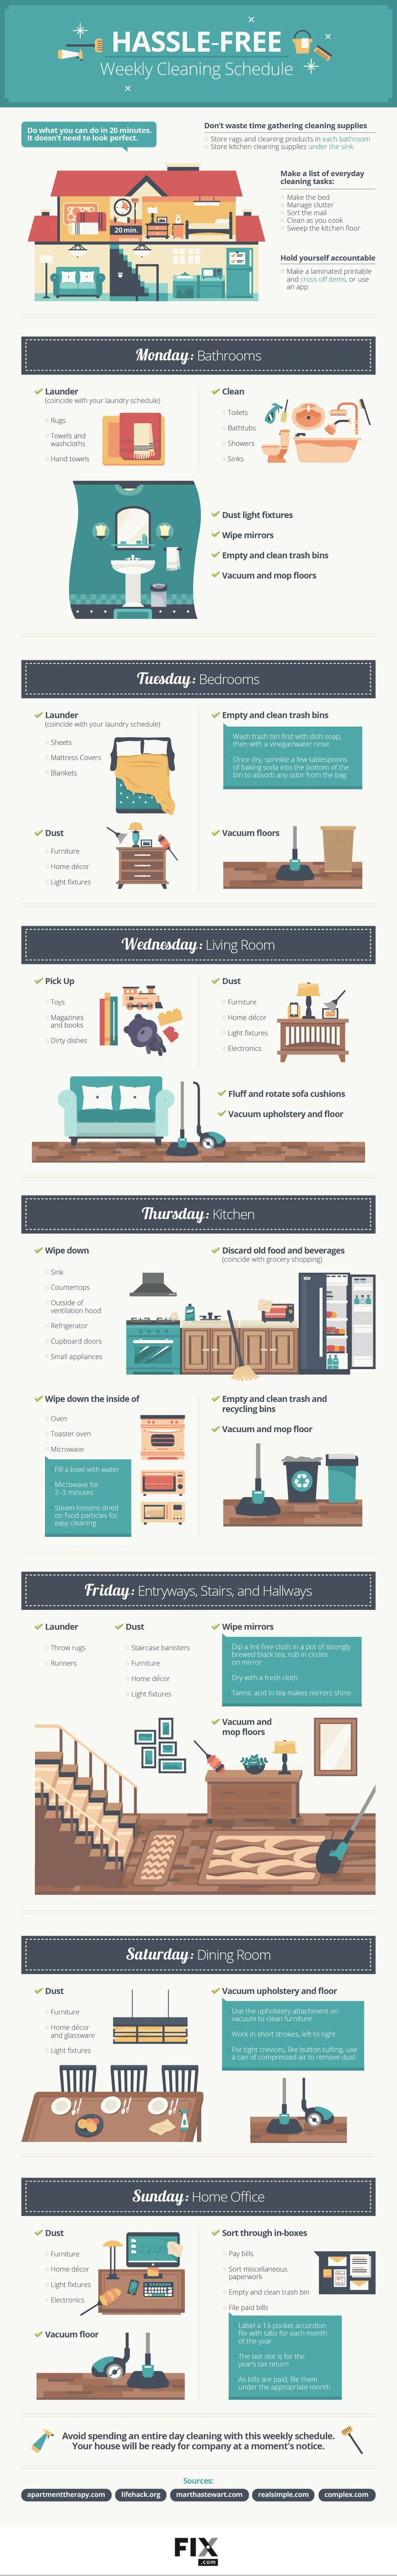 Hassle-Free Weekly Cleaning Schedule #Infographic #Kitchen #HomeImprovement